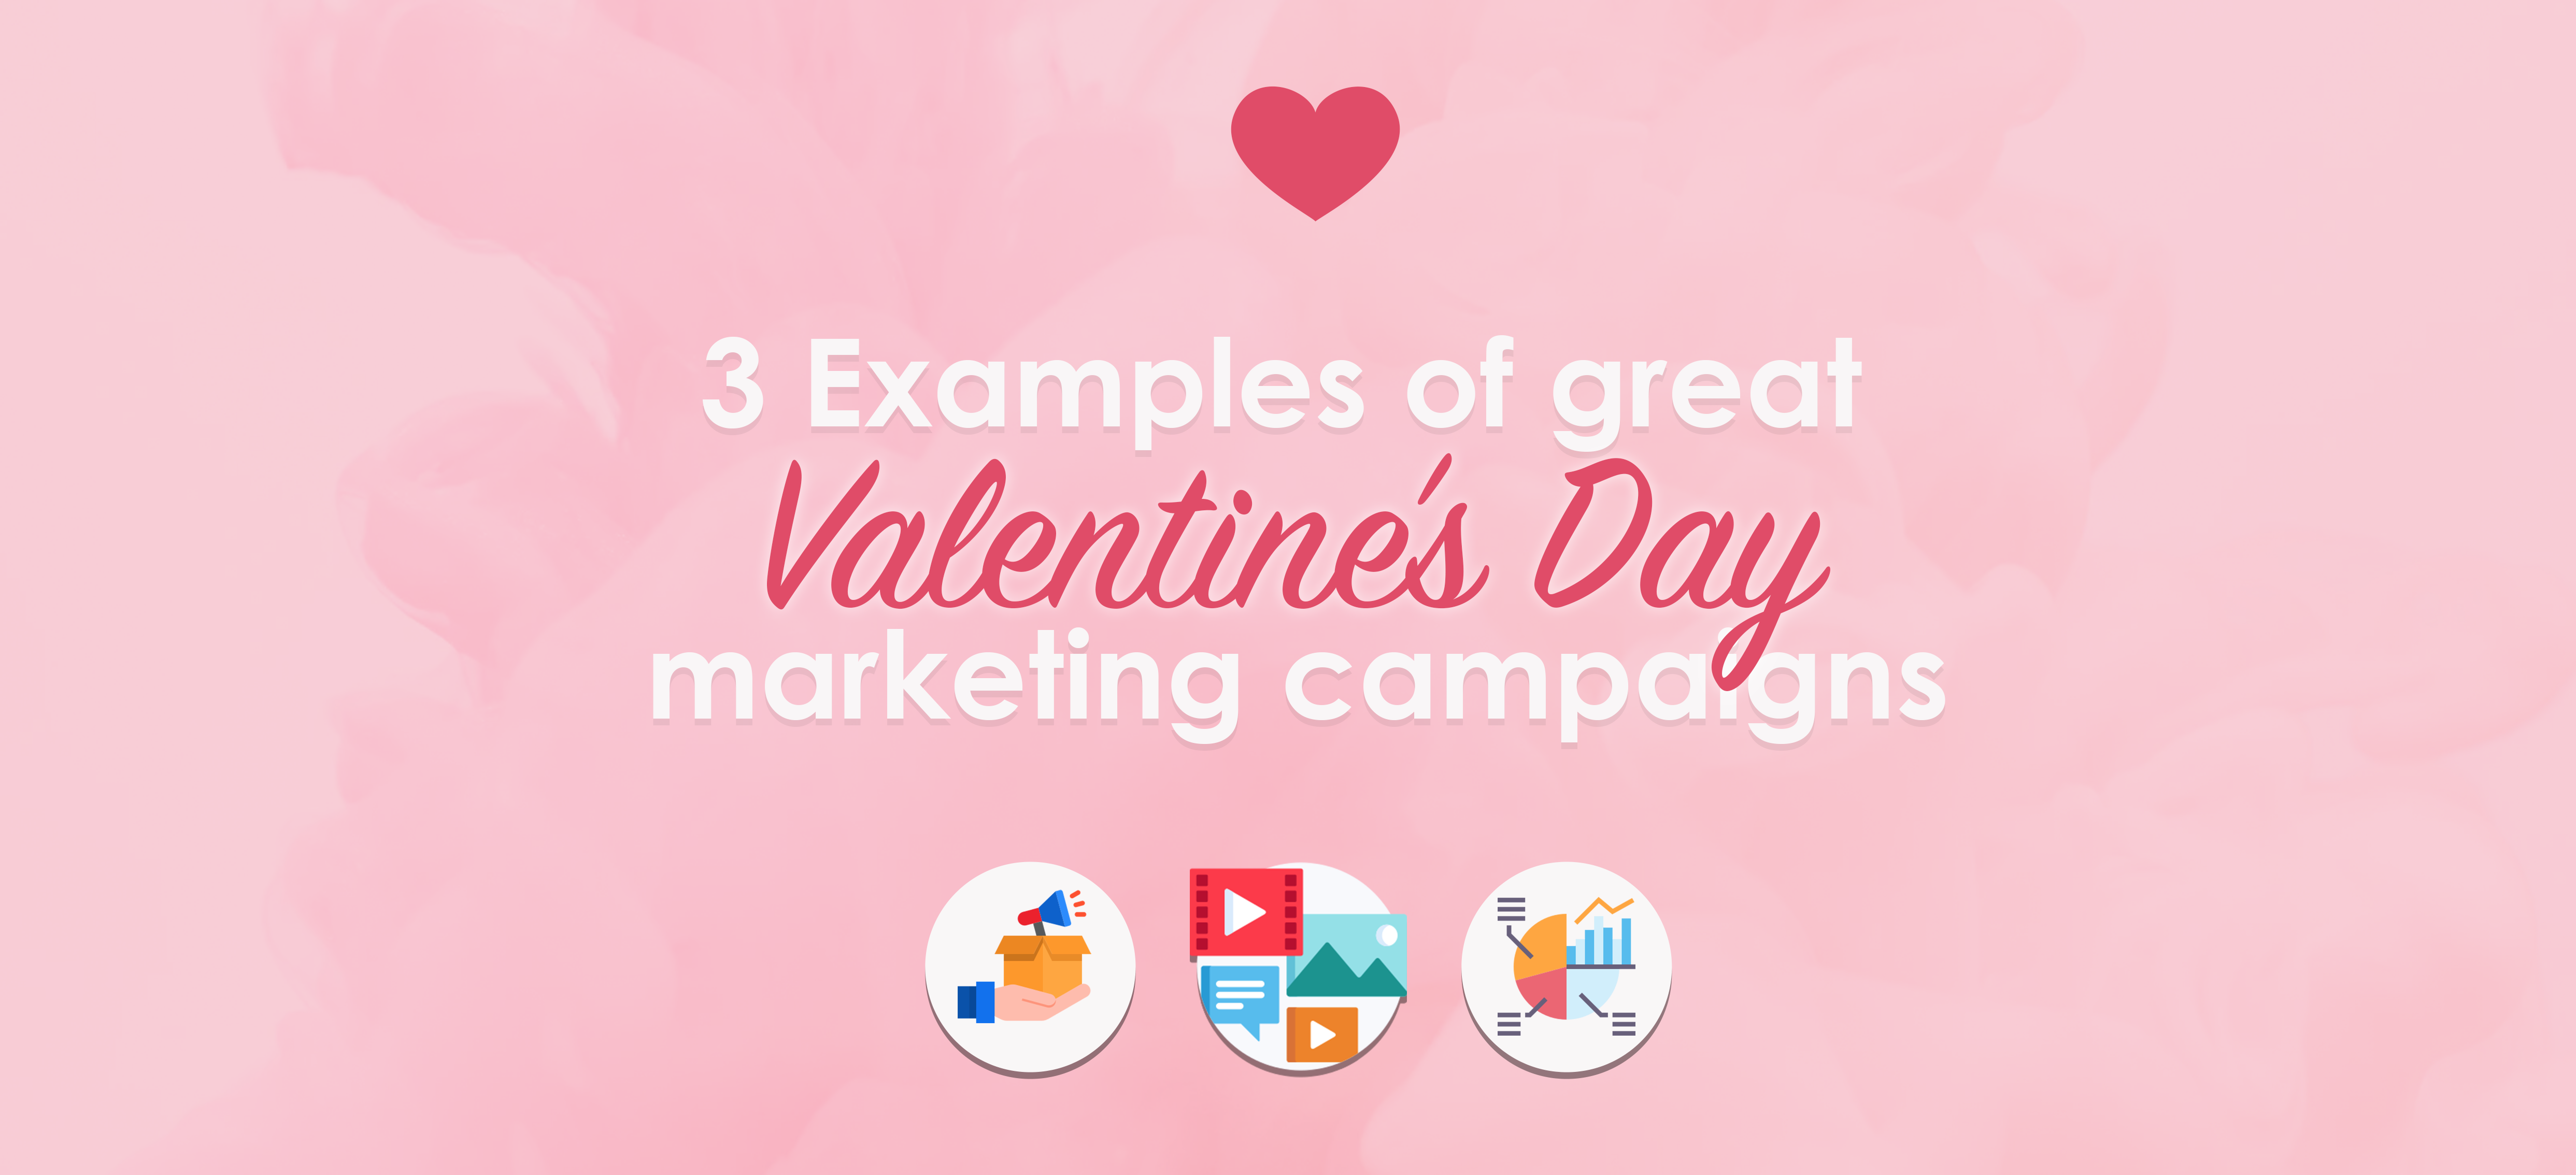 3 Examples of great Valentine's Day marketing campaigns